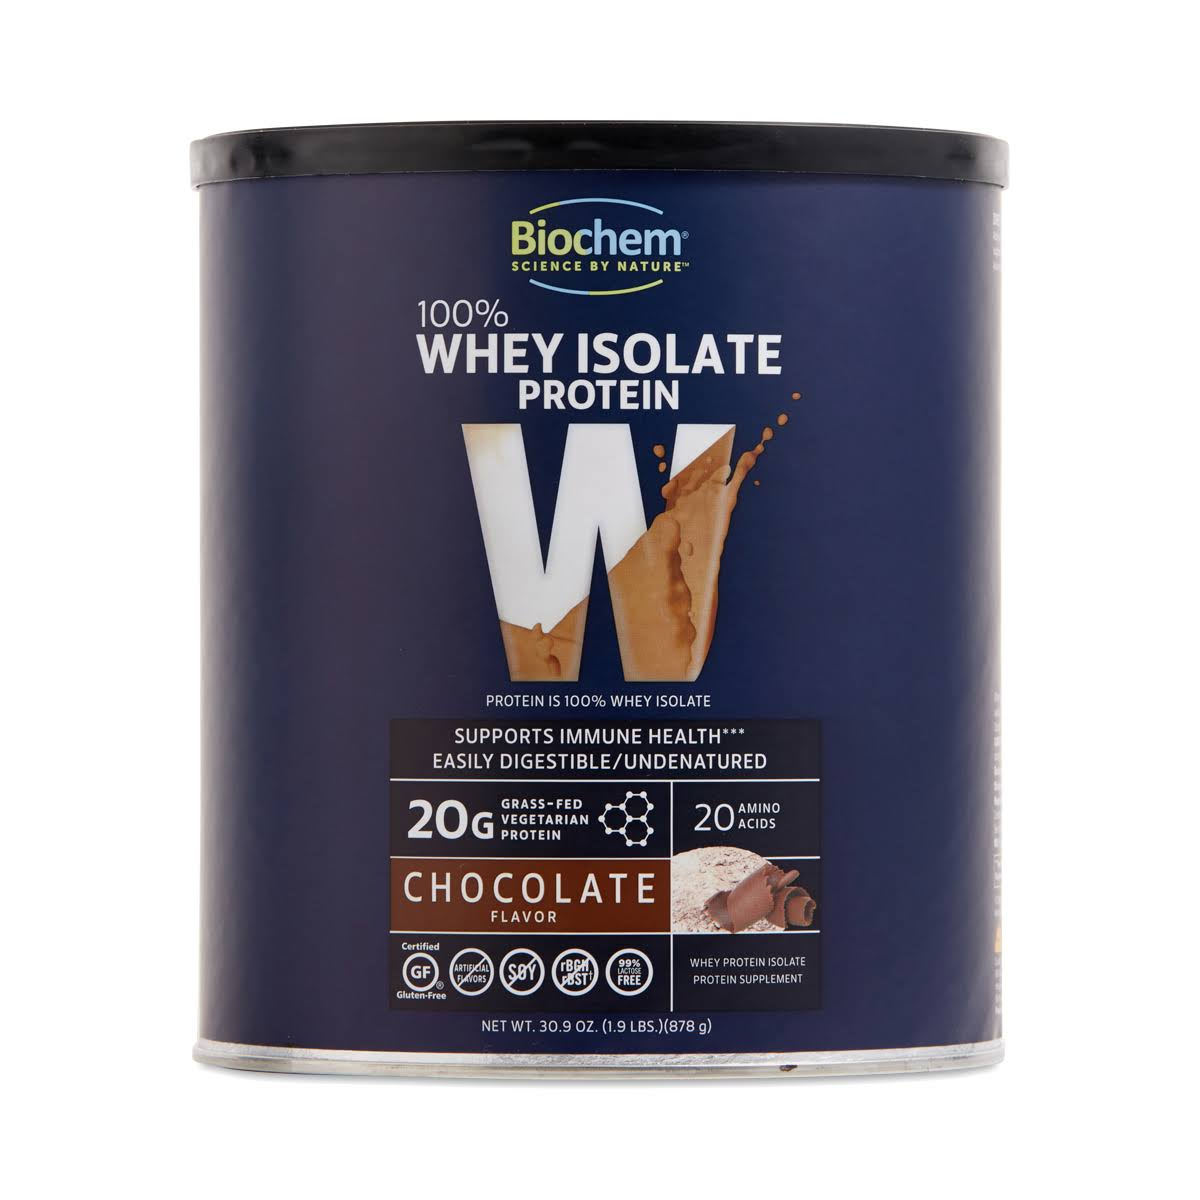 Biochem Sports Whey Protein Isolate Powder - Chocolate, 1.9lb